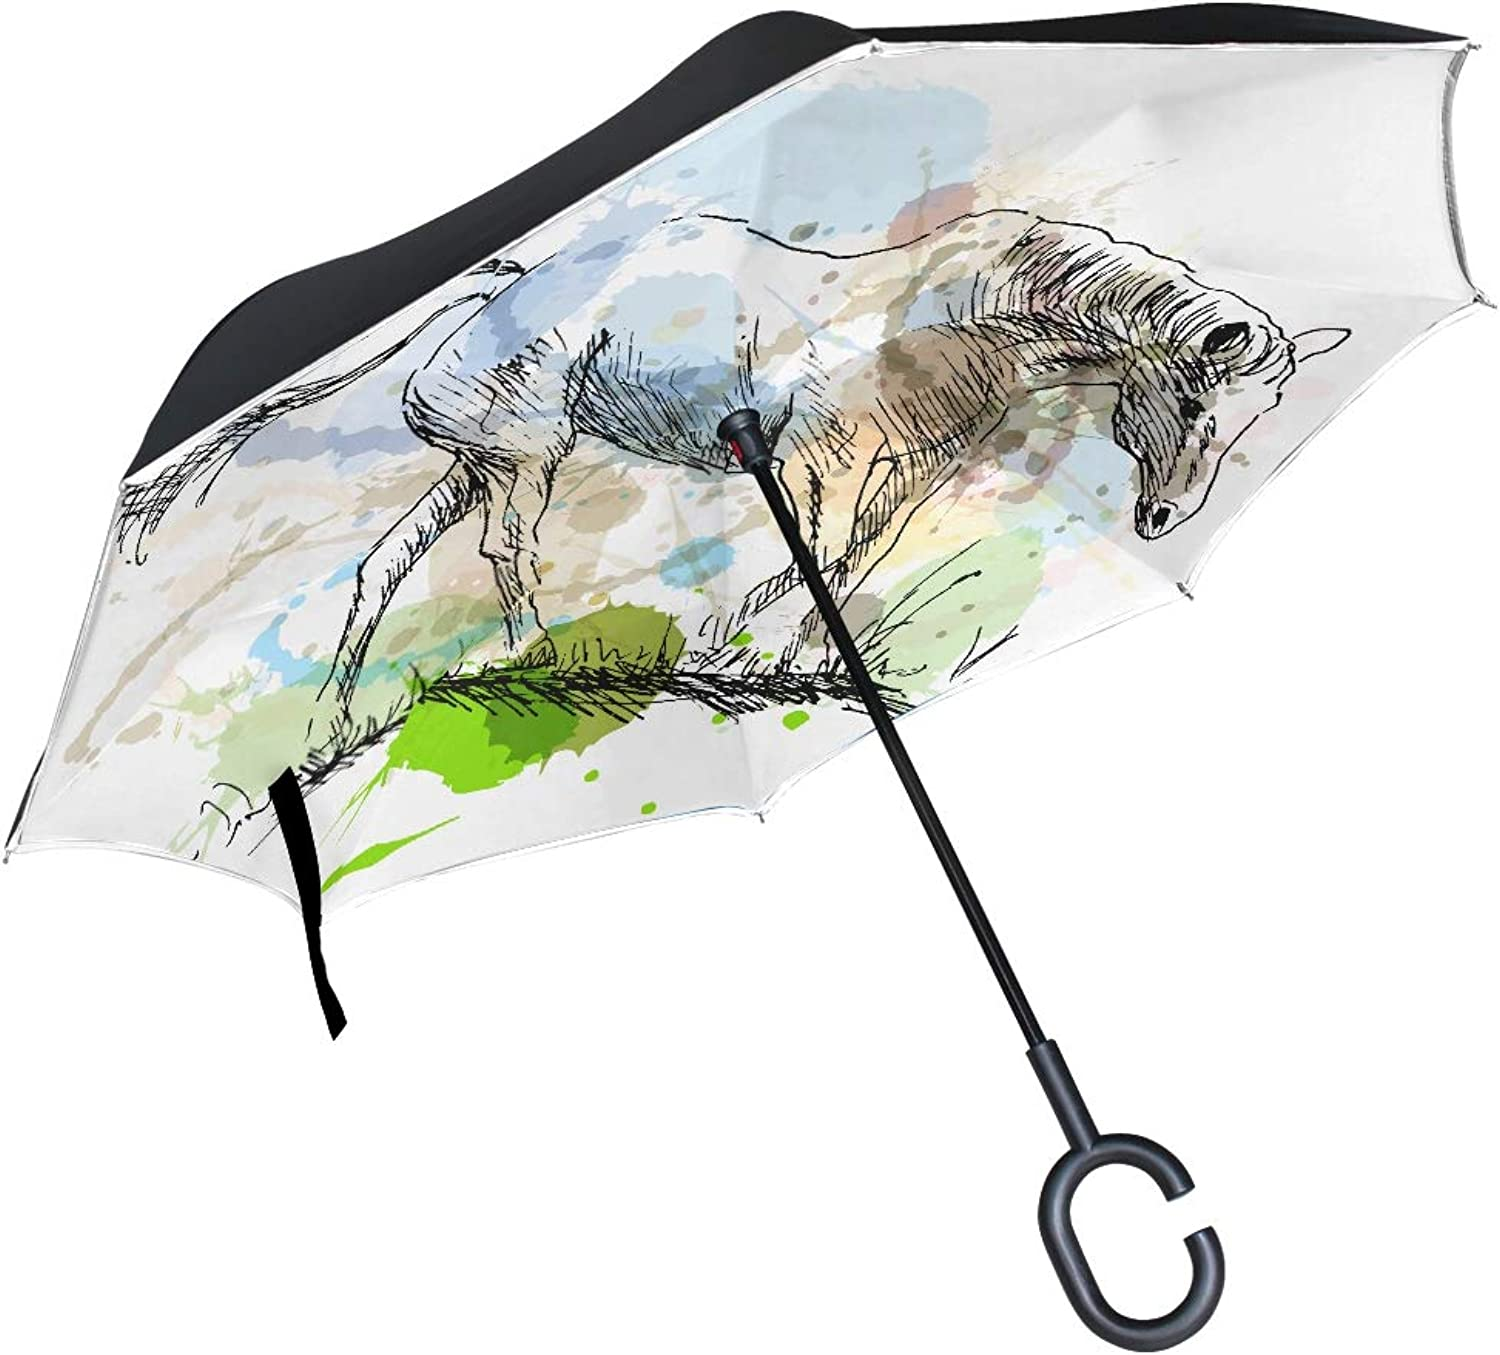 Double Layer Ingreened colord Hand Sketch White Horse Vector Umbrellas Reverse Folding Umbrella Windproof Uv Predection Big Straight Umbrella for Car Rain Outdoor with CShaped Handle